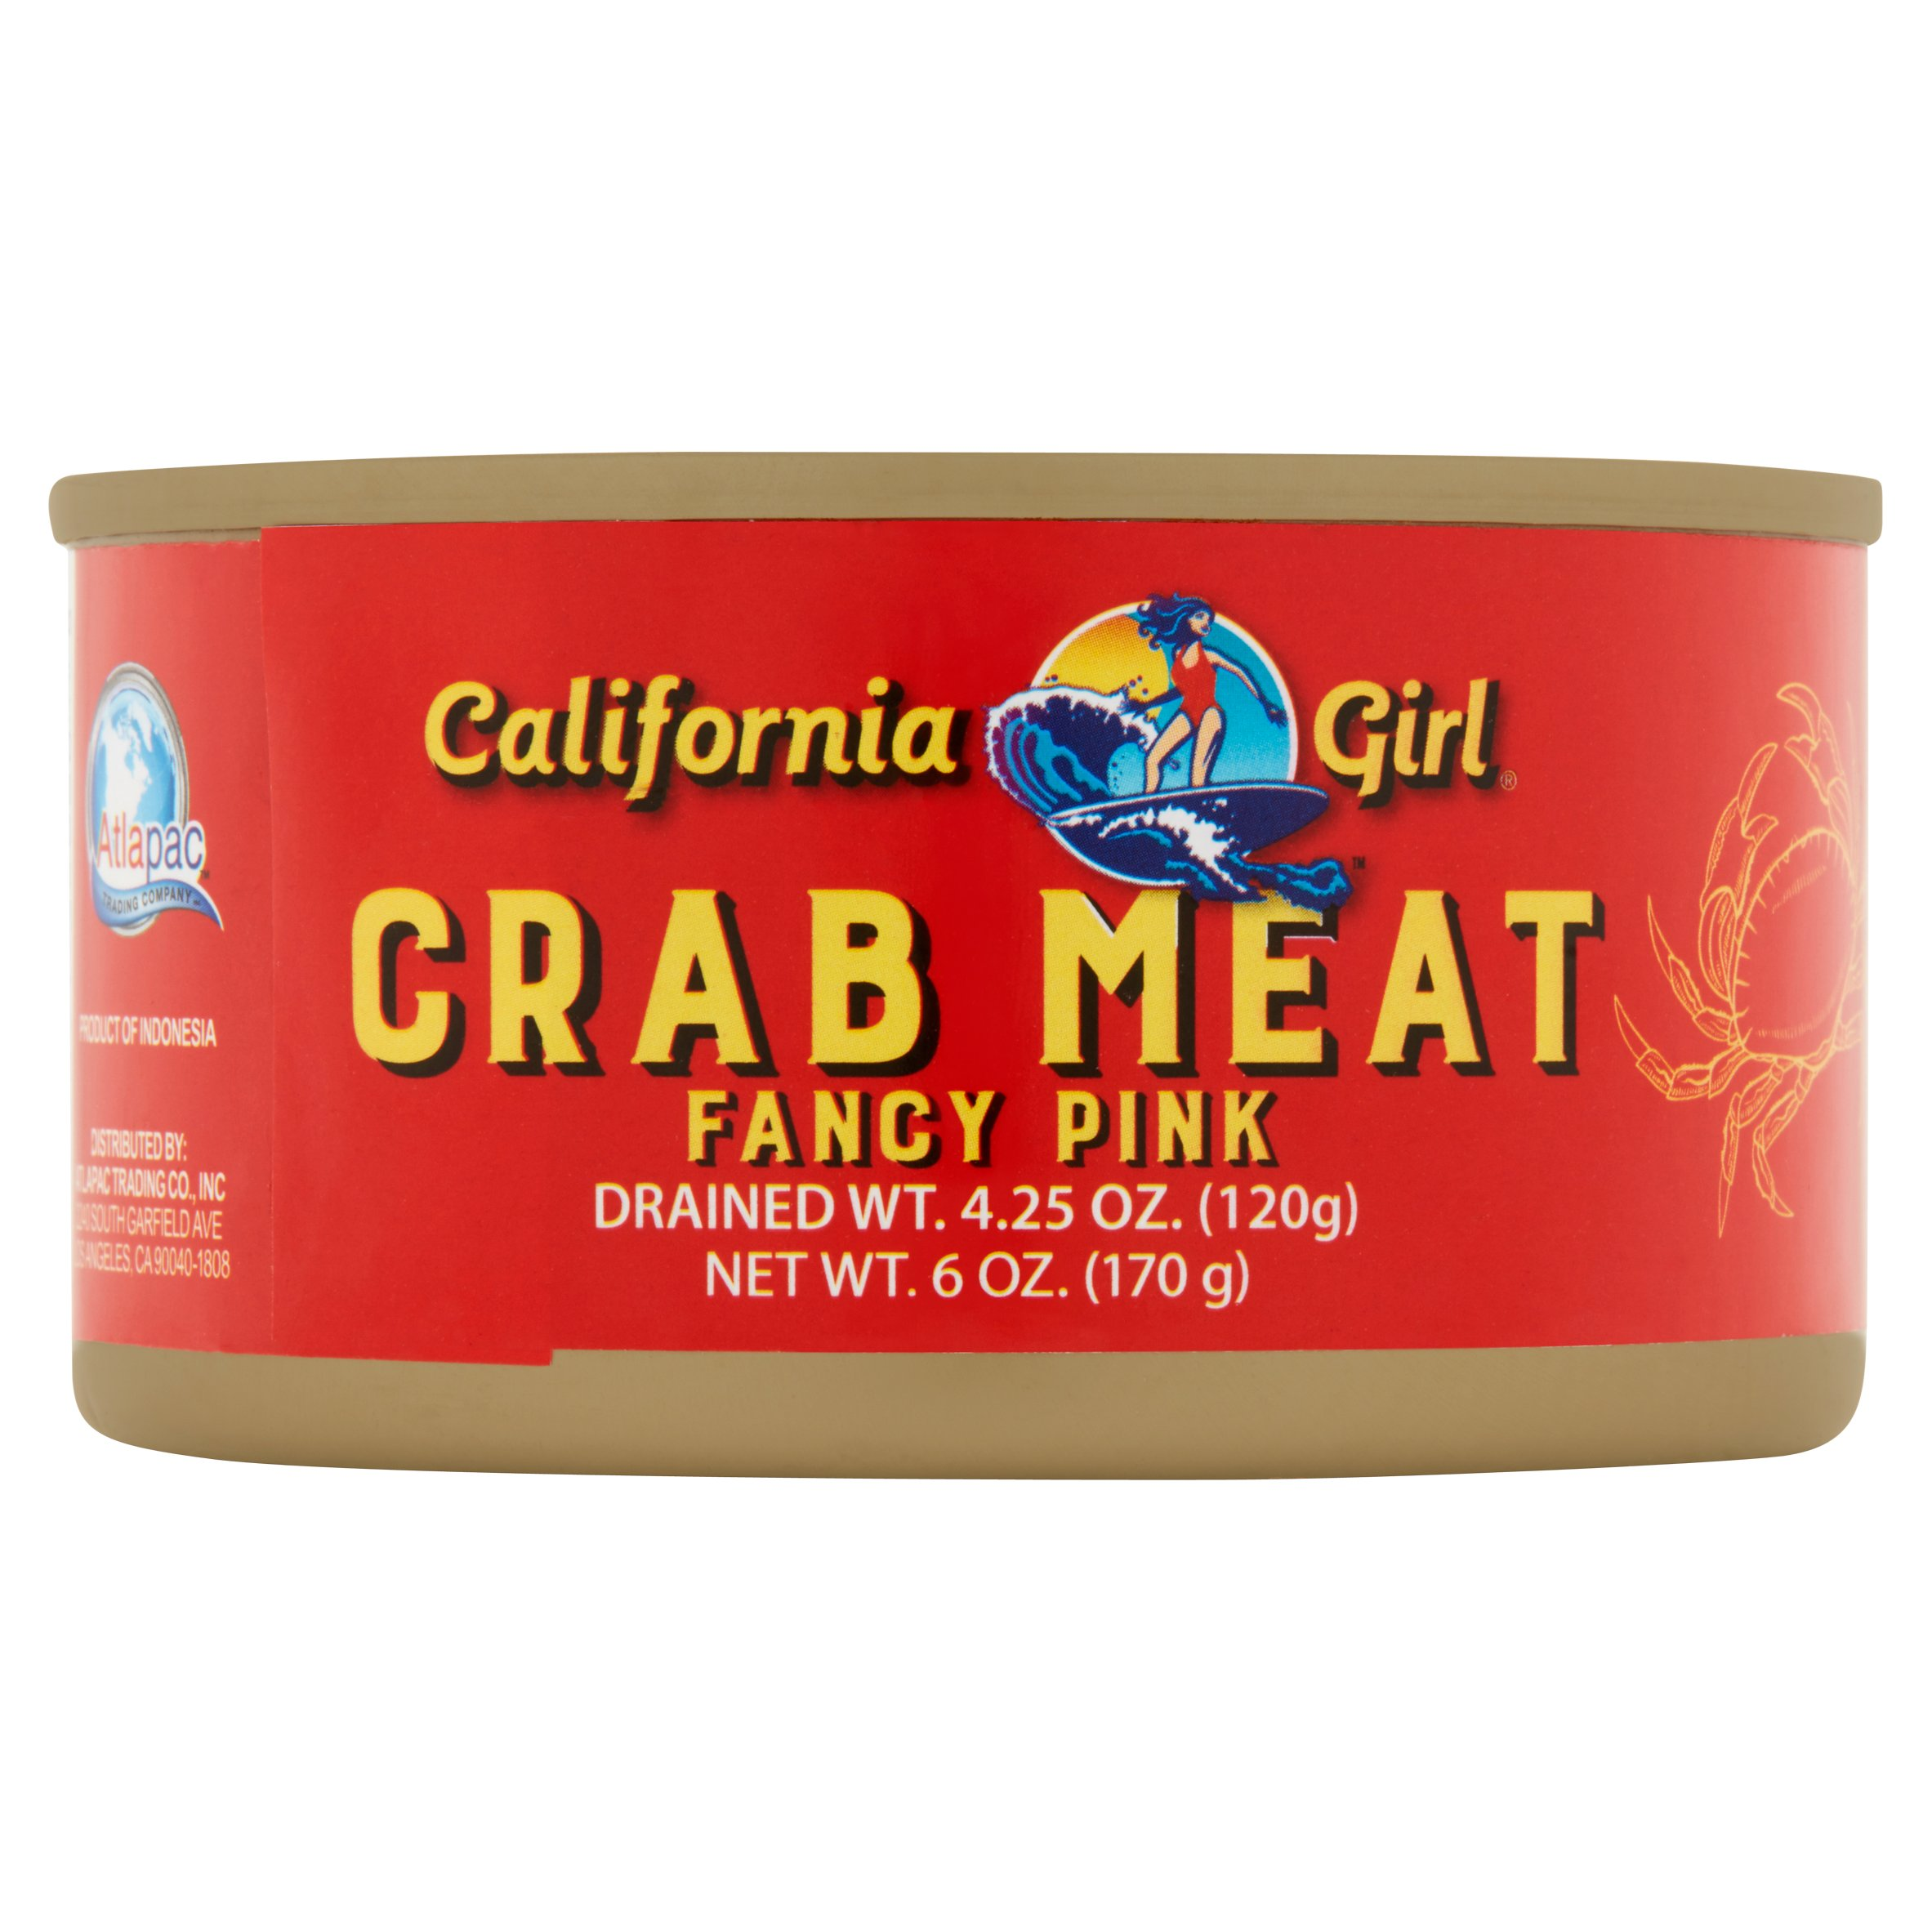 California Girl Fancy Pink Crab Meat, 6 oz by Atlapac Trading Co., Inc